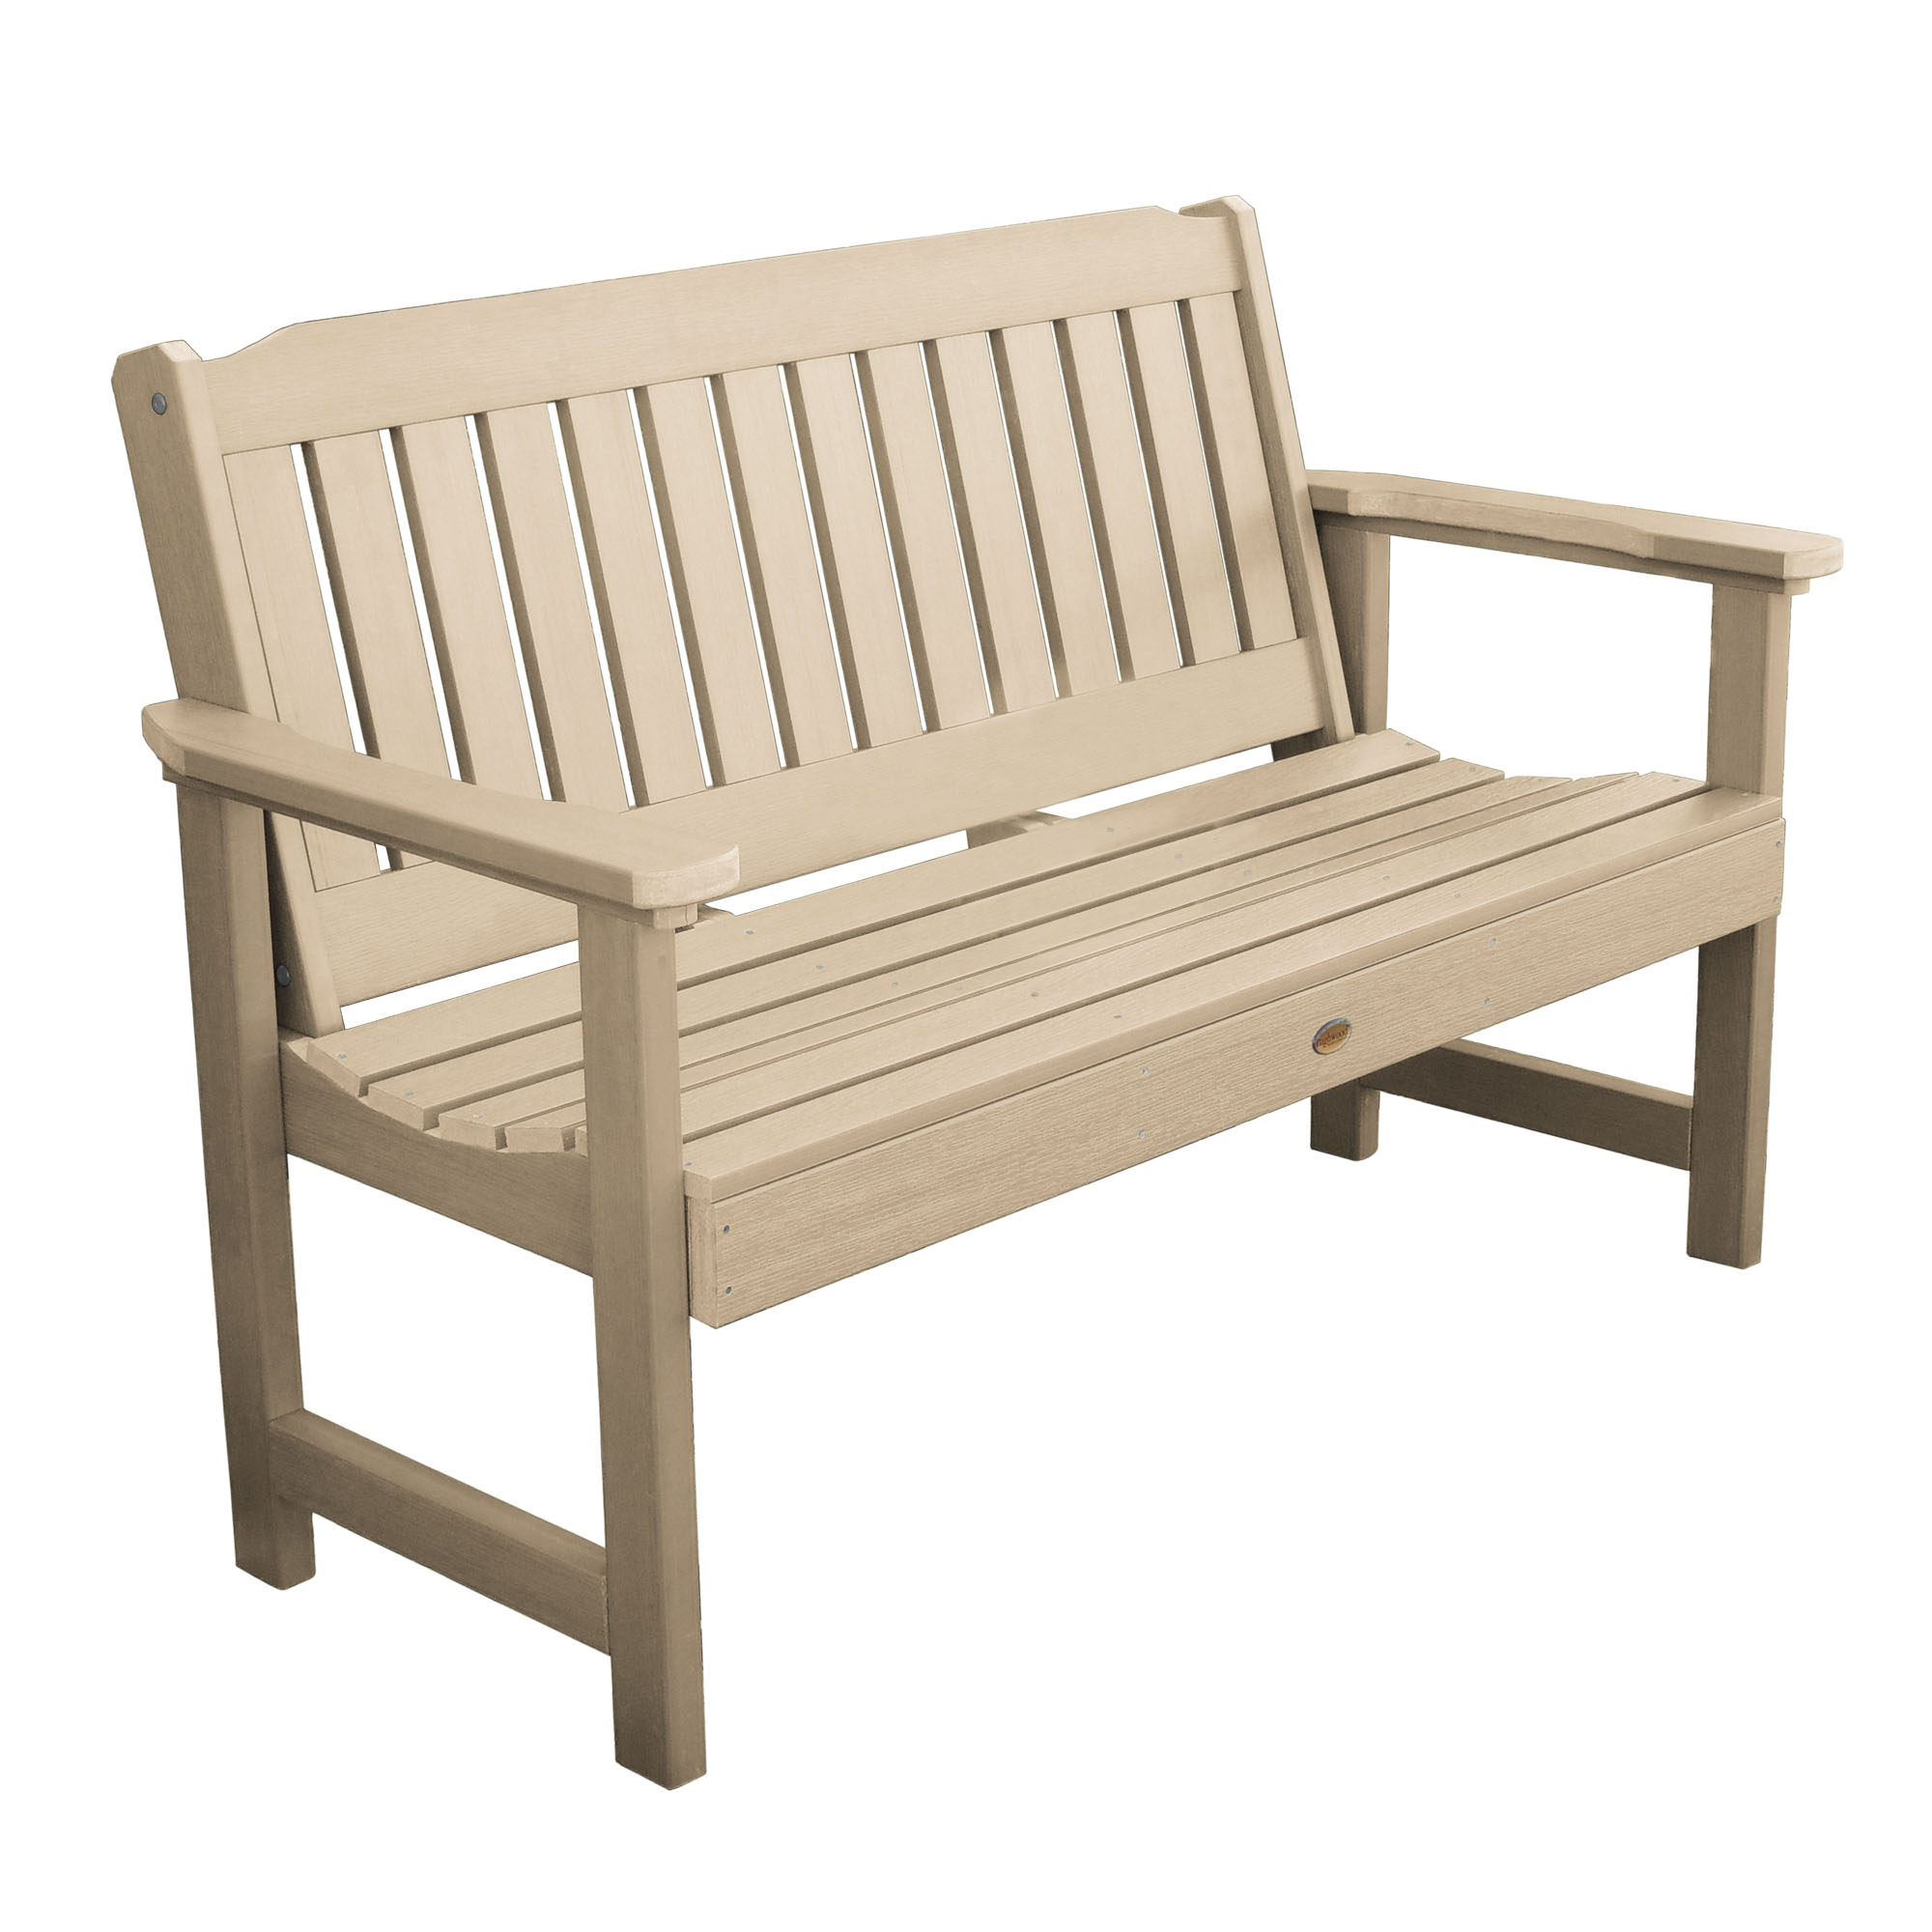 highwood Eco-Friendly Recycled Plastic Lehigh Garden Bench, 4' by Highwood USA